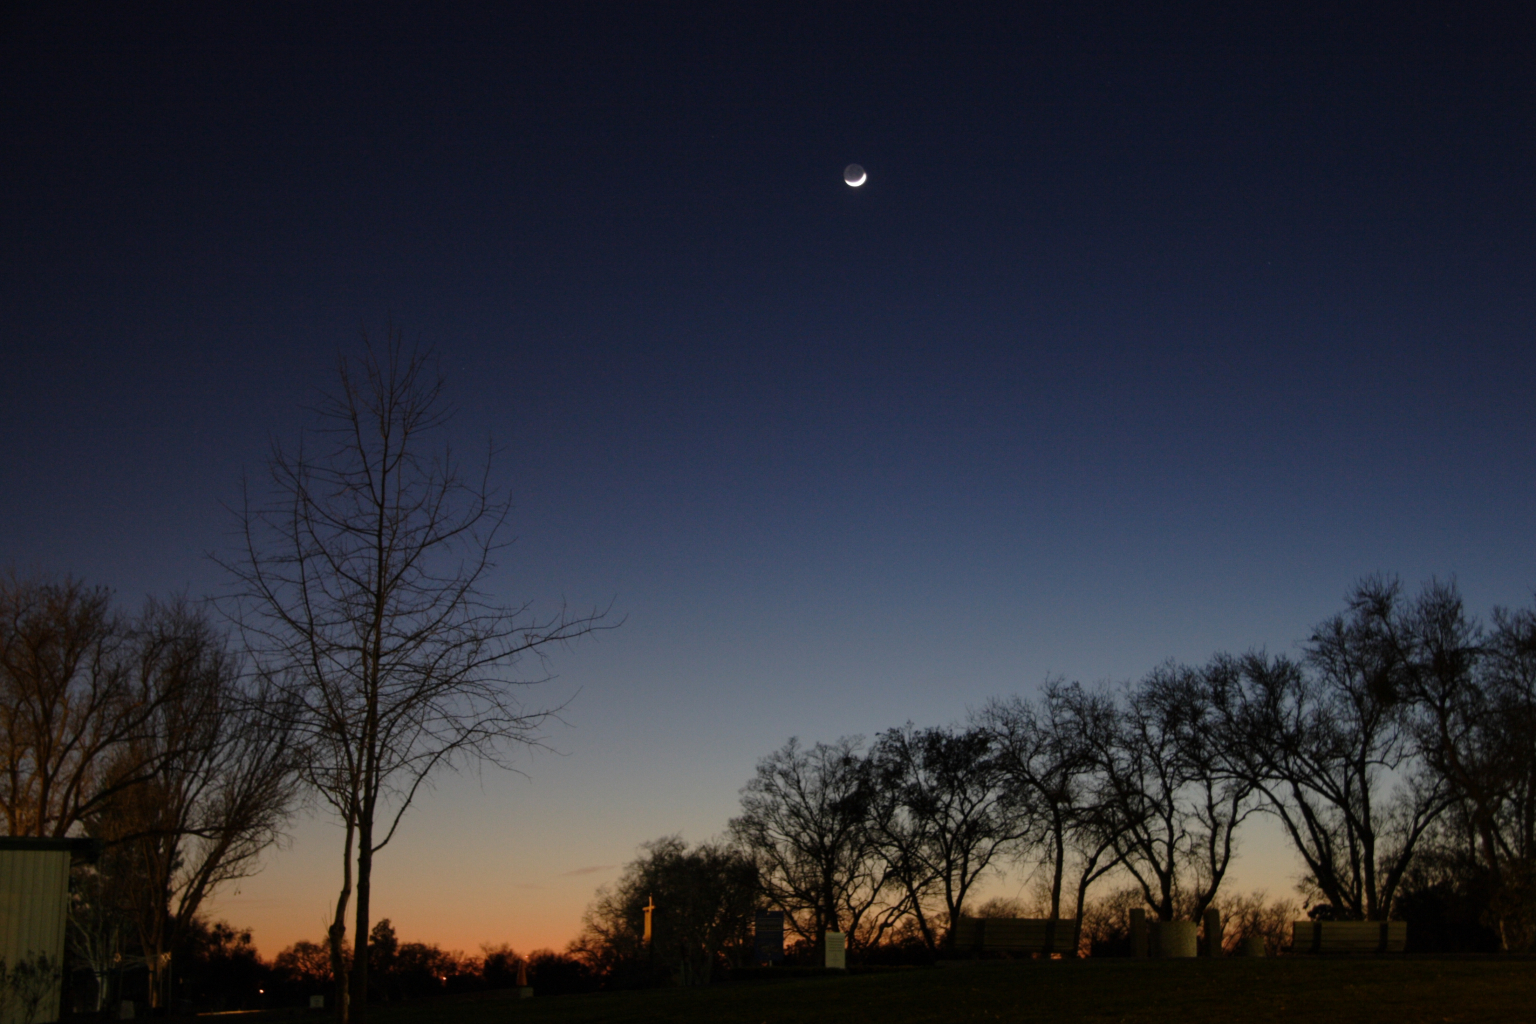 The Evening Moon